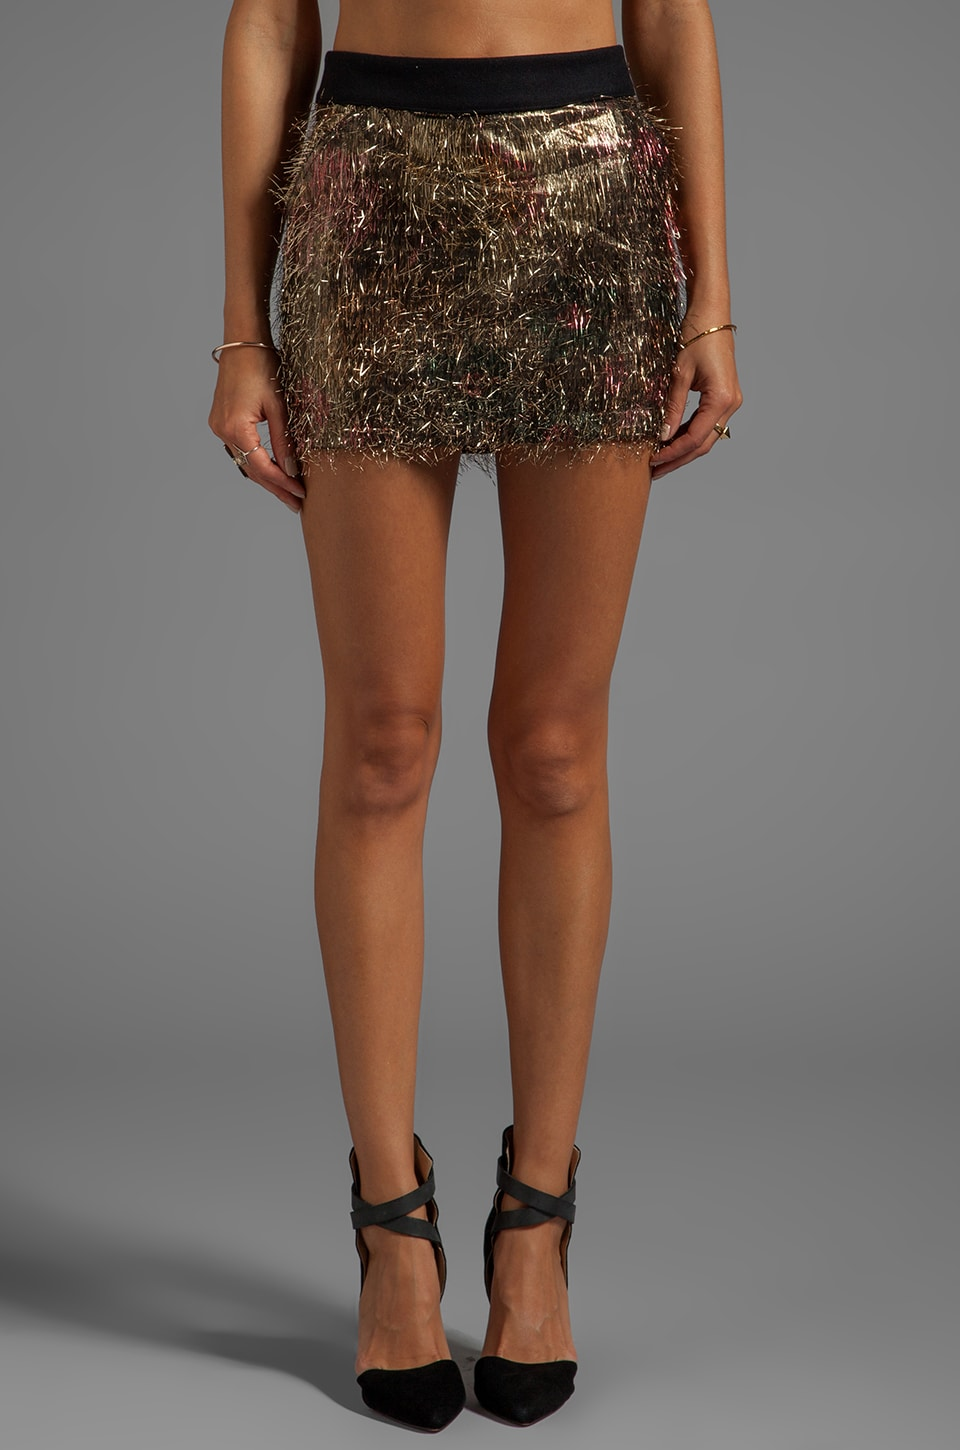 ROSEanna Gorden Tinsel Gold Camo Skirt in Tinsel